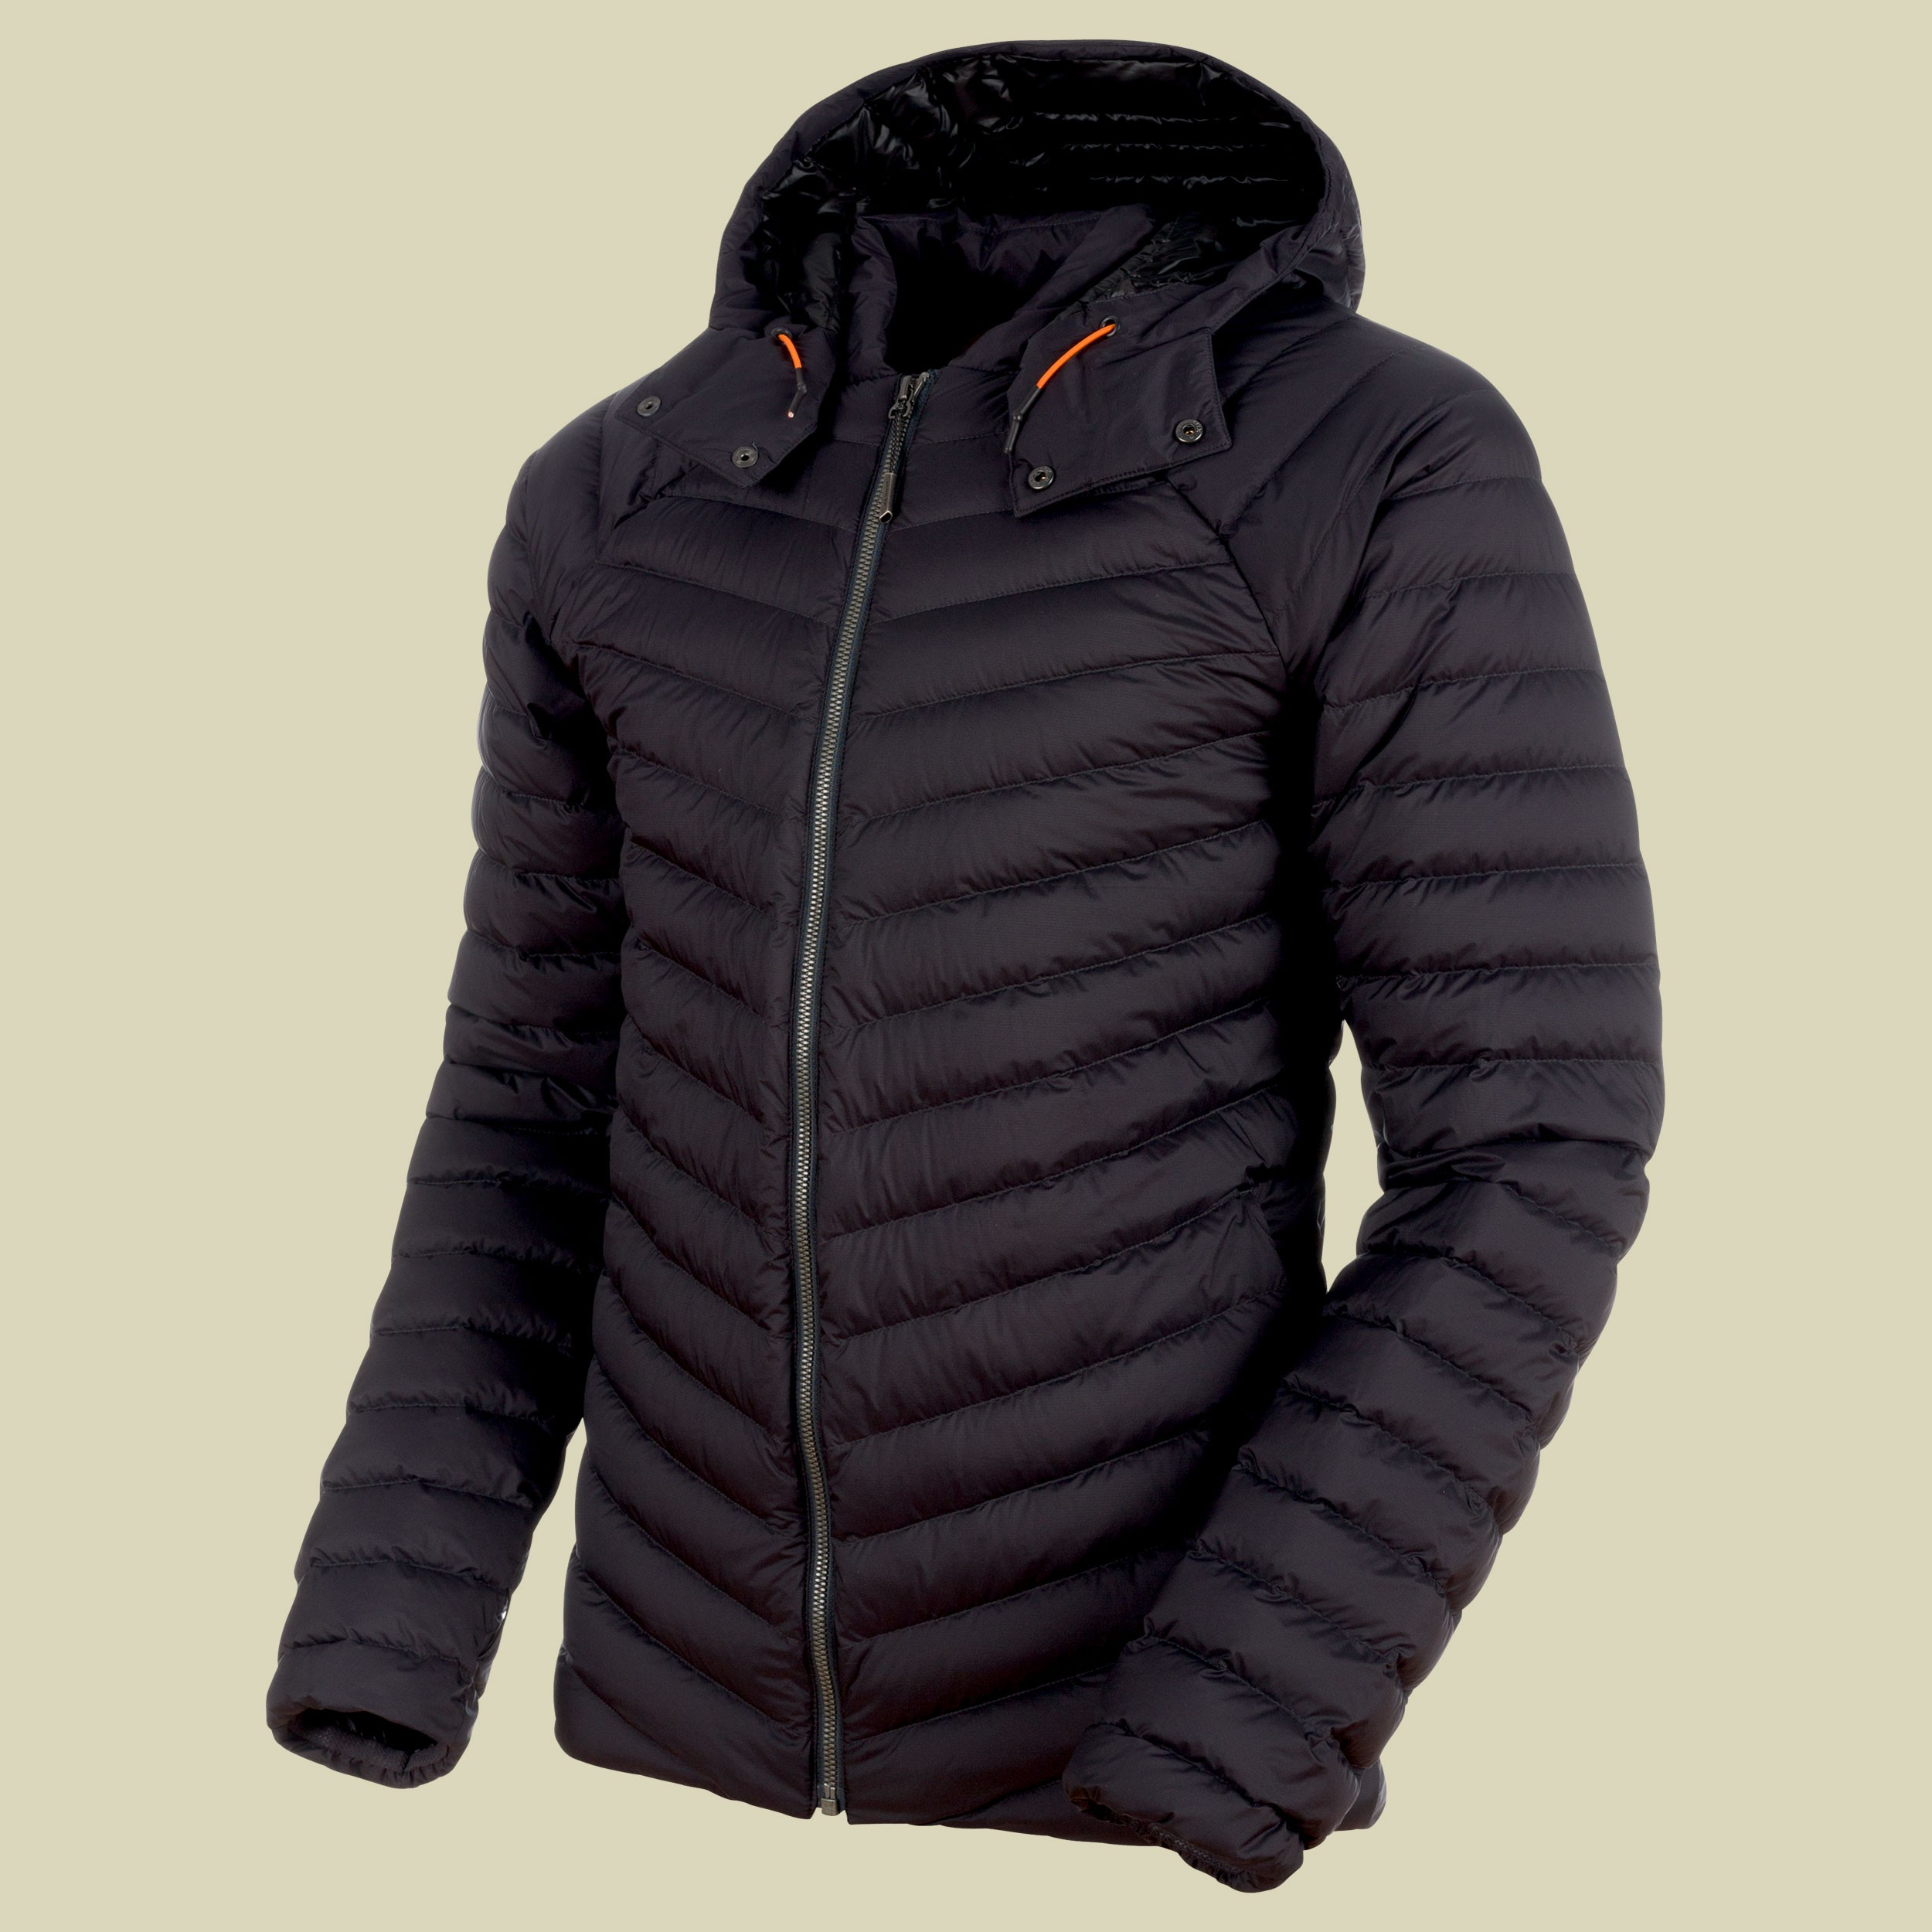 Alvra Light IN Hooded Jacket Men